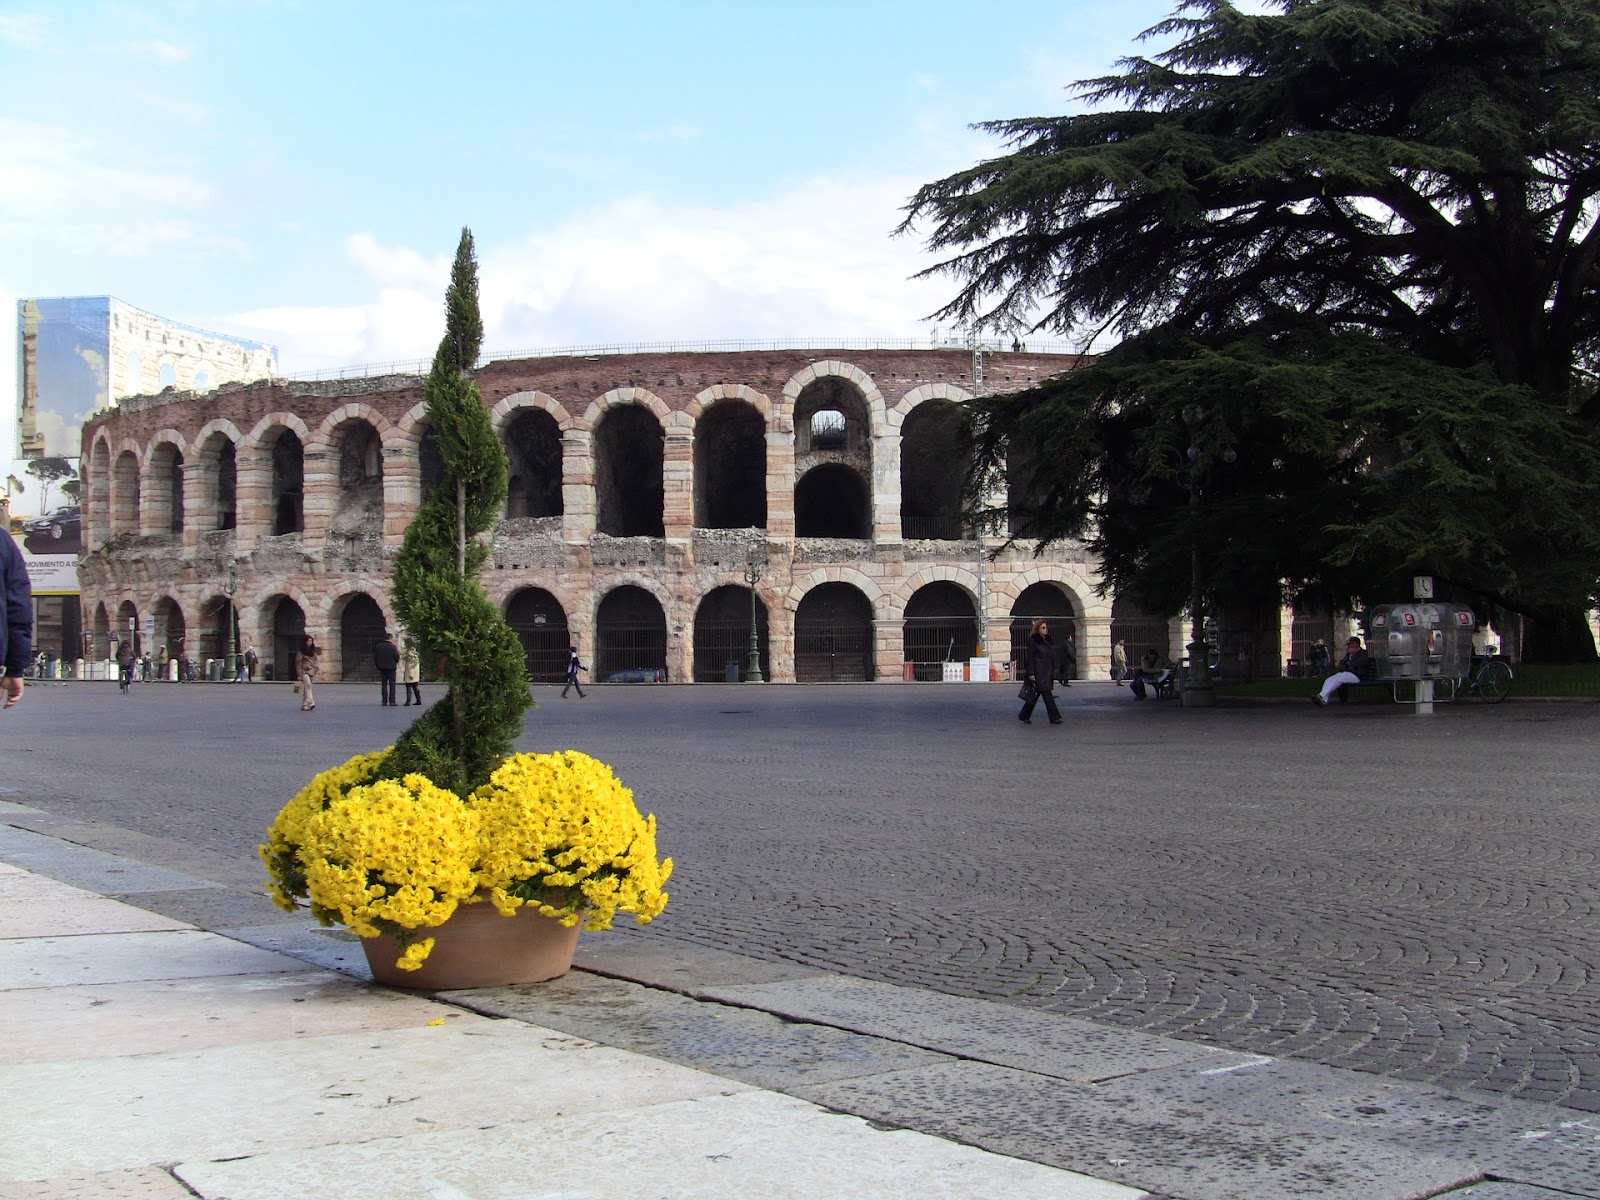 The Arena and Piazza Brà in Verona, Italy. Photo: Gail Keller, WineTrekkerTV.com.